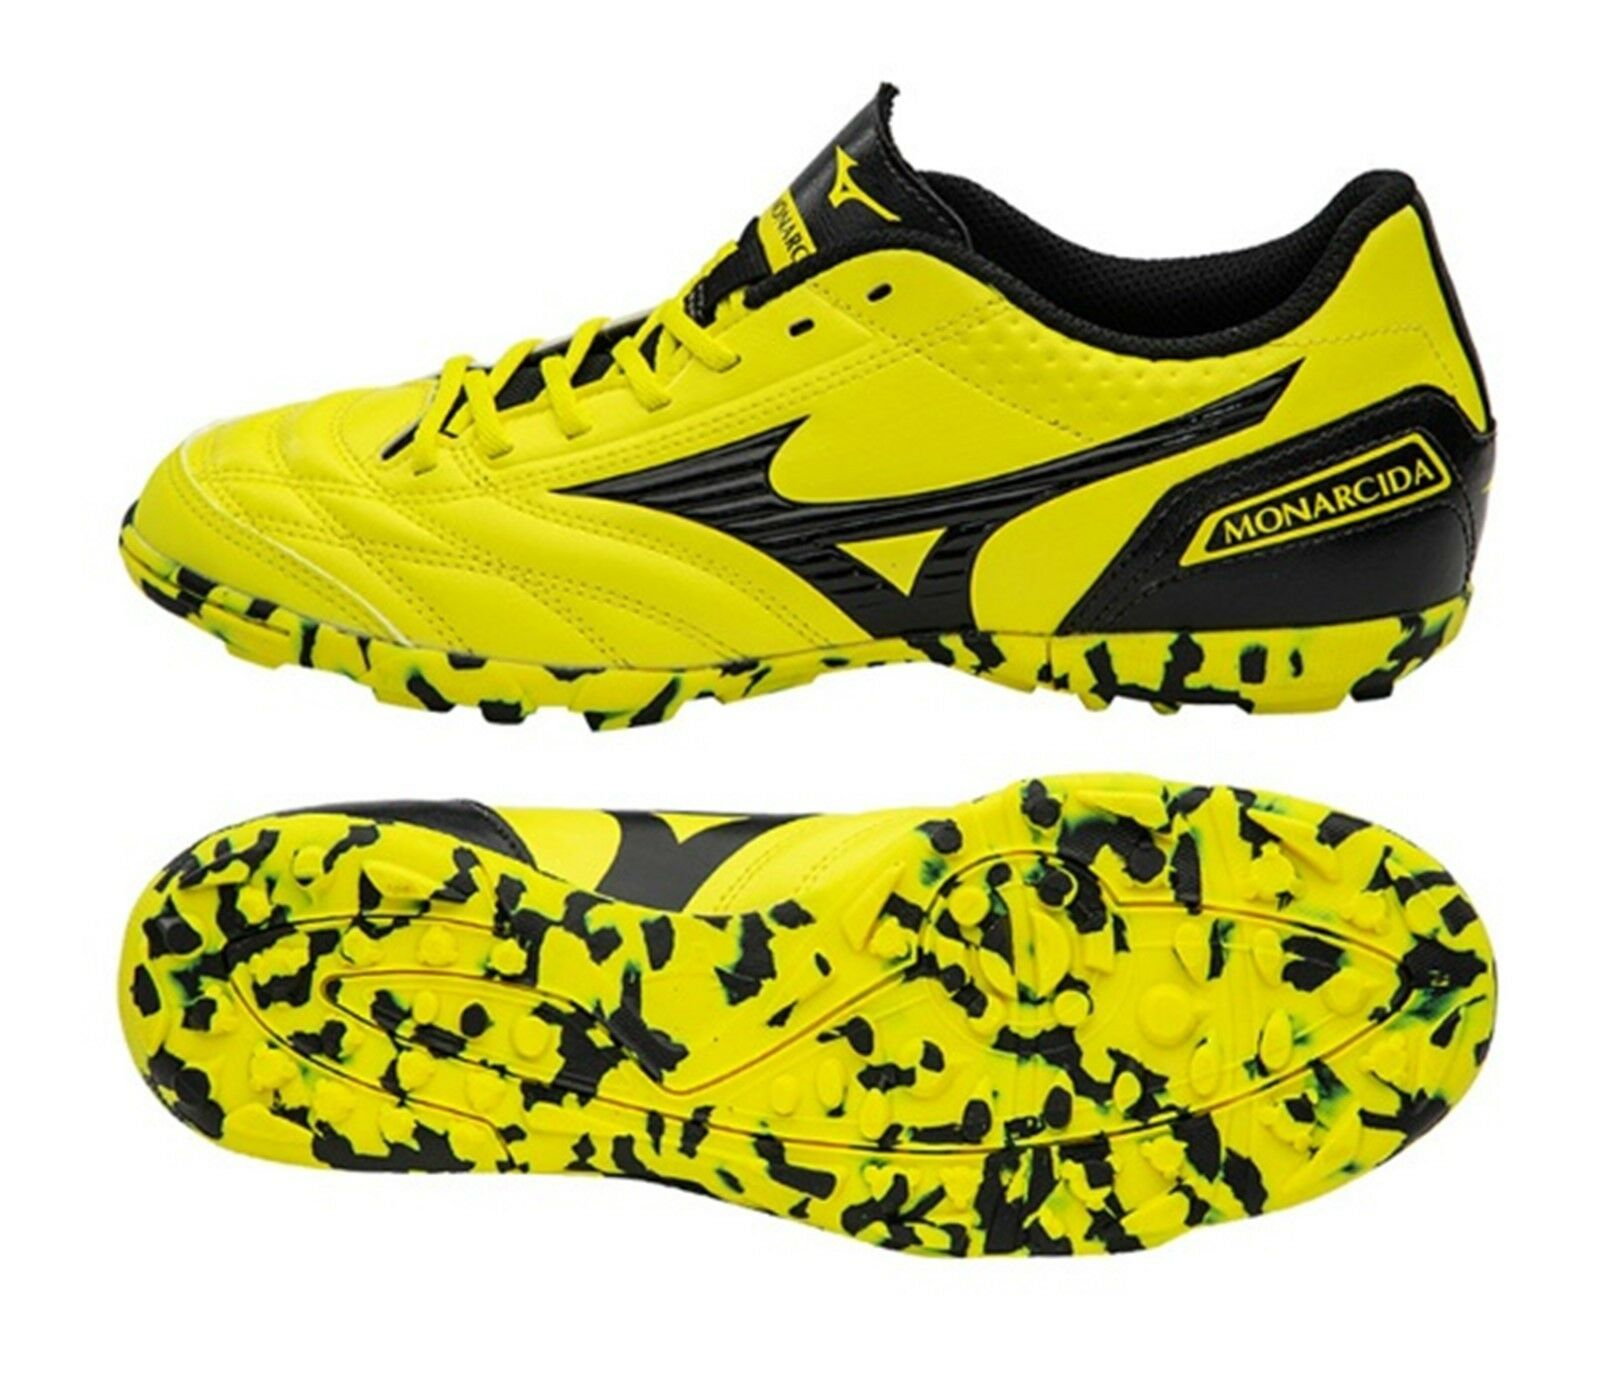 Mizuno Men Monarcida FS TF Cleats Soccer Futsal Schuhes Stiefel Spike Q1GB181209